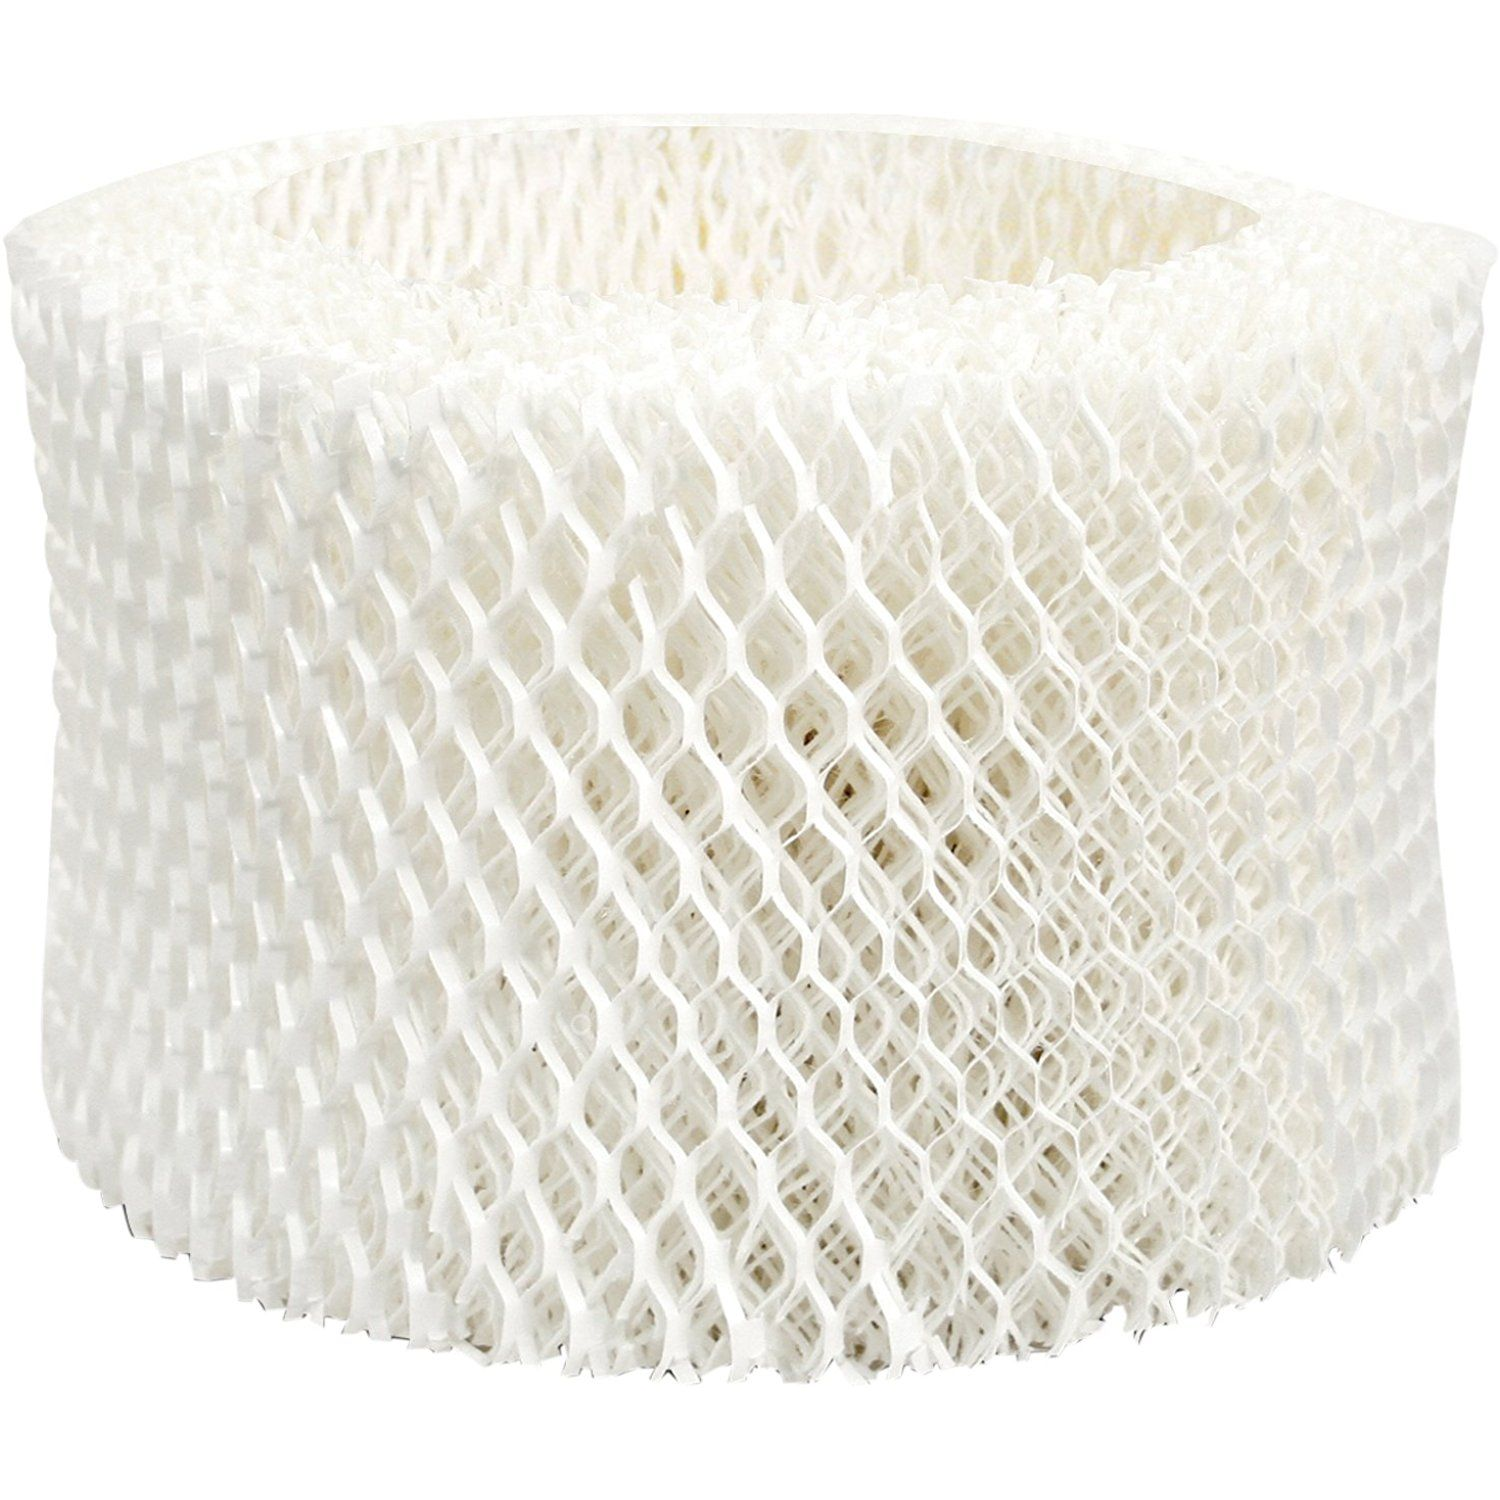 Honeywell HAC504 Series Humidifier Replacement Filter